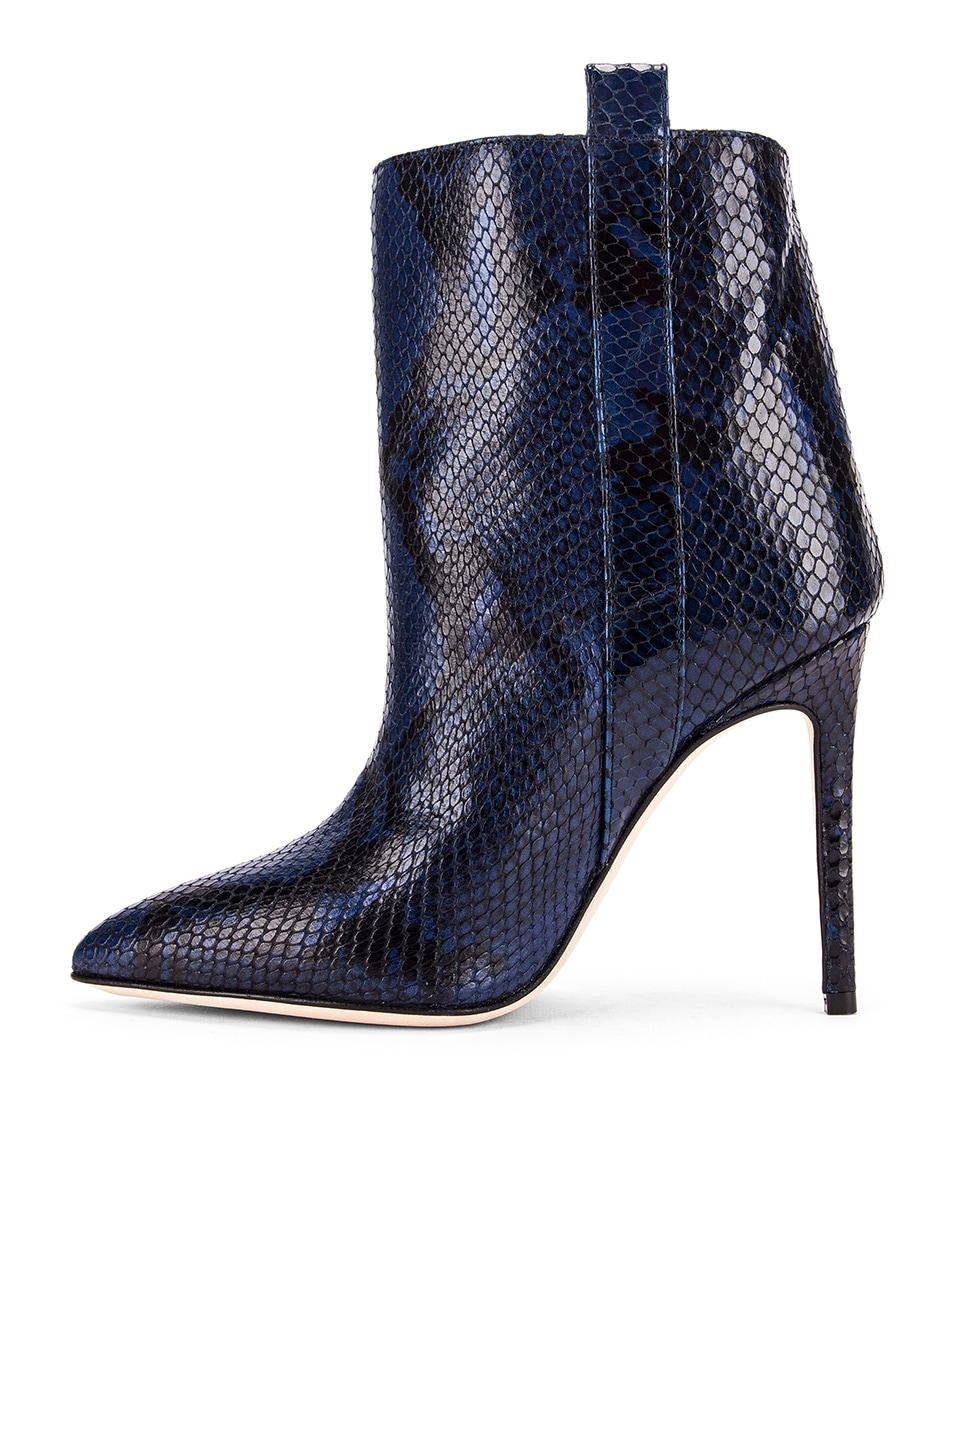 Image 5 of Paris Texas Snake Print Ankle Boot in Navy